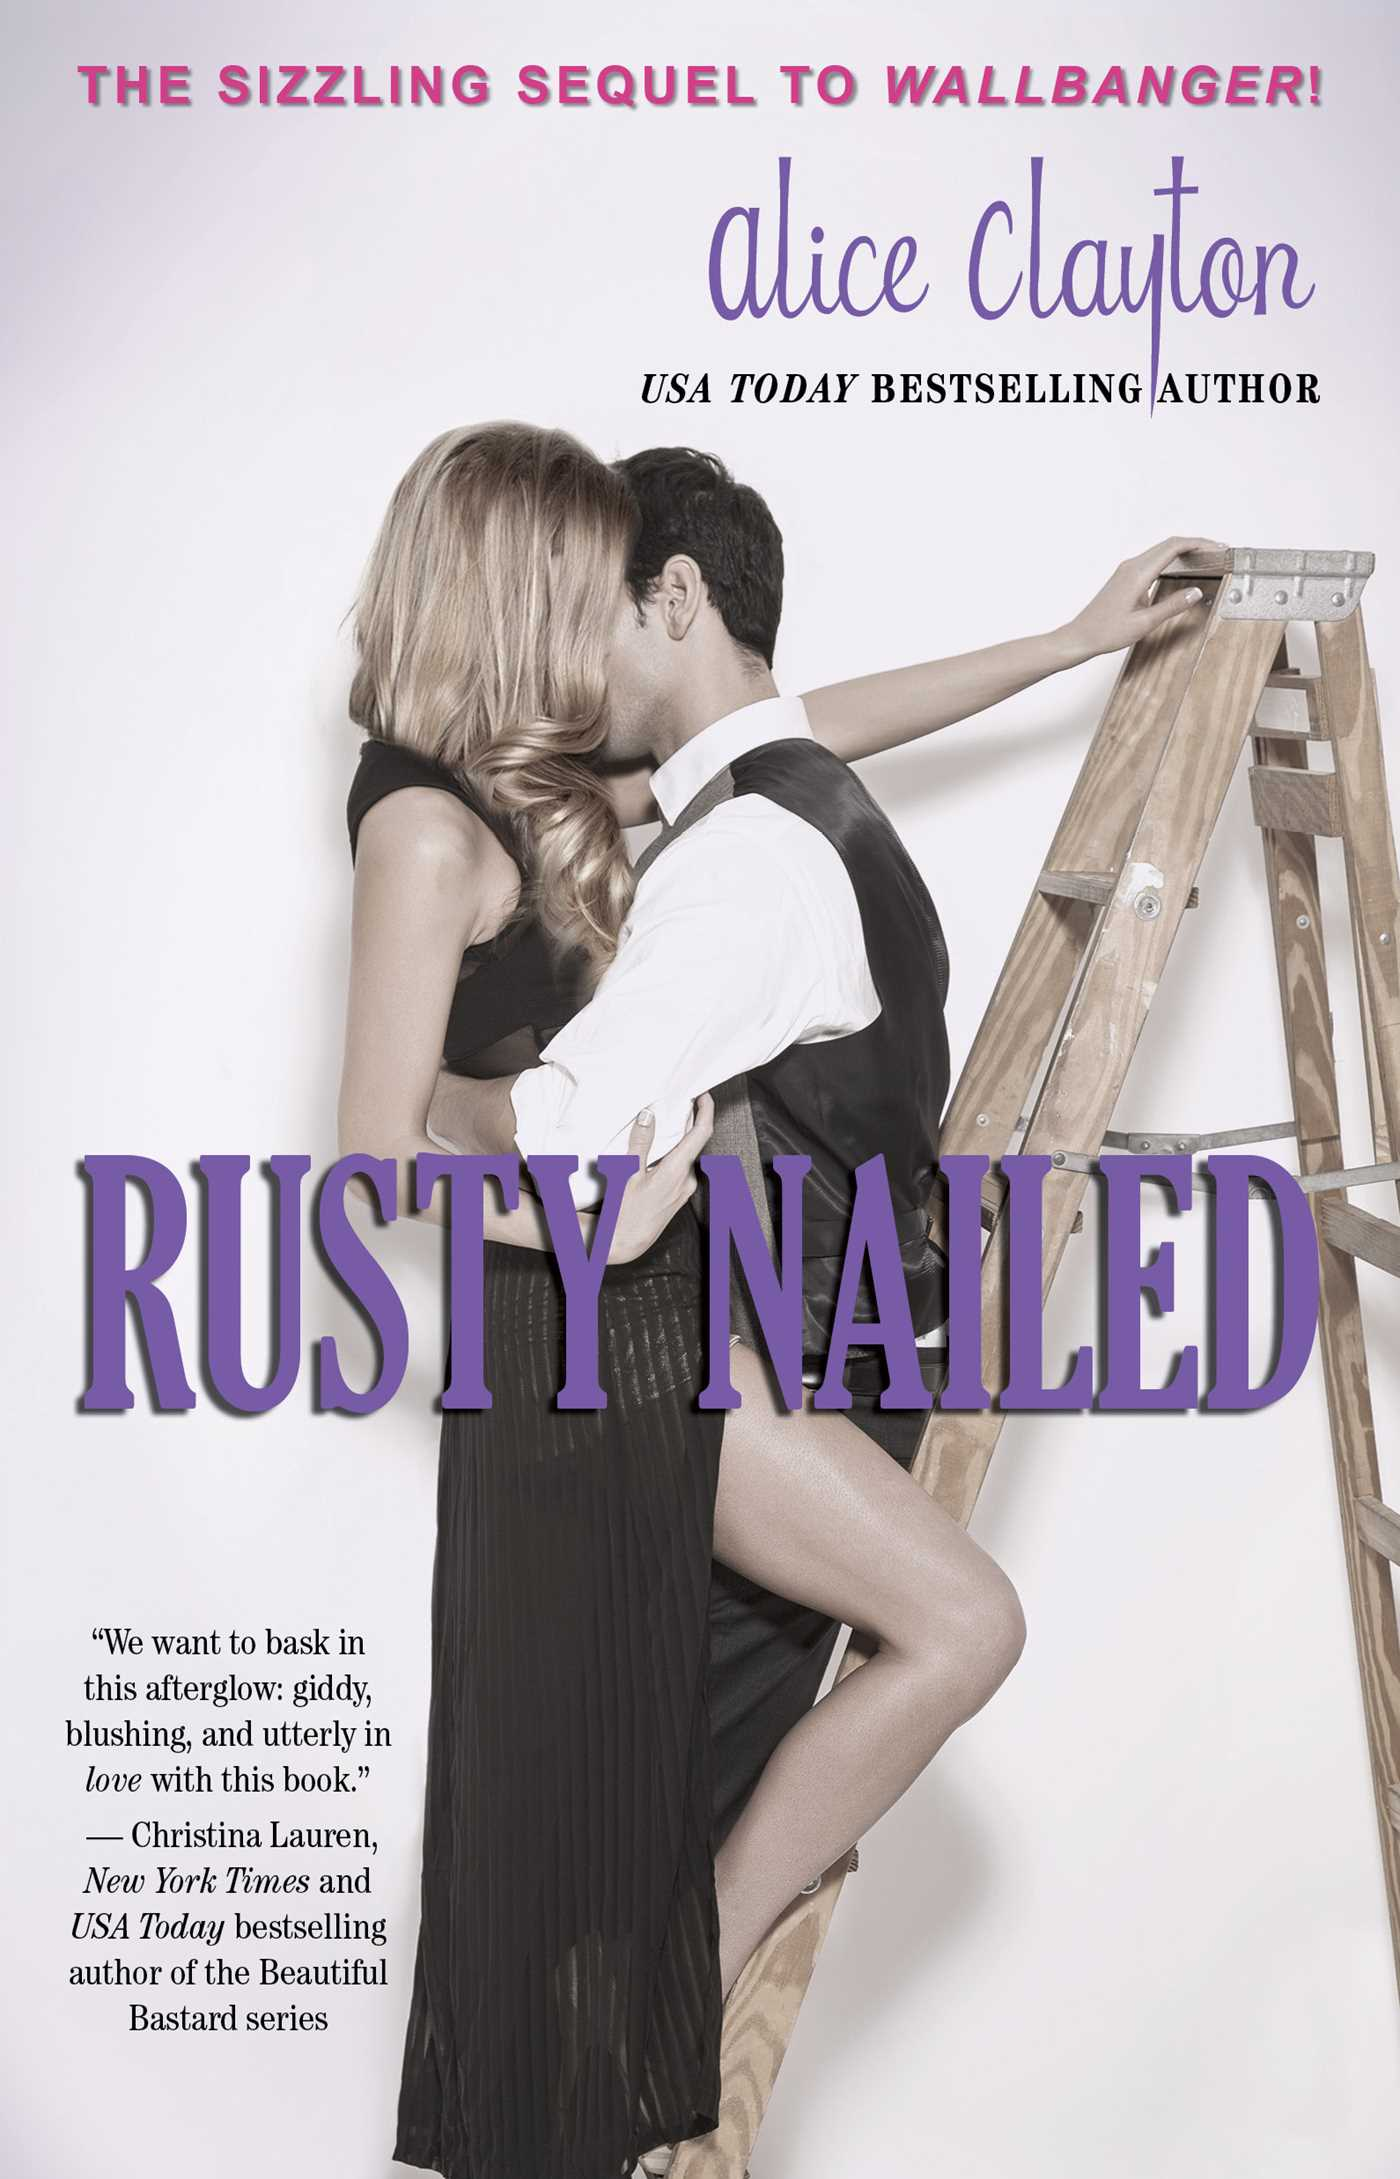 Rusty-nailed-9781476766669_hr